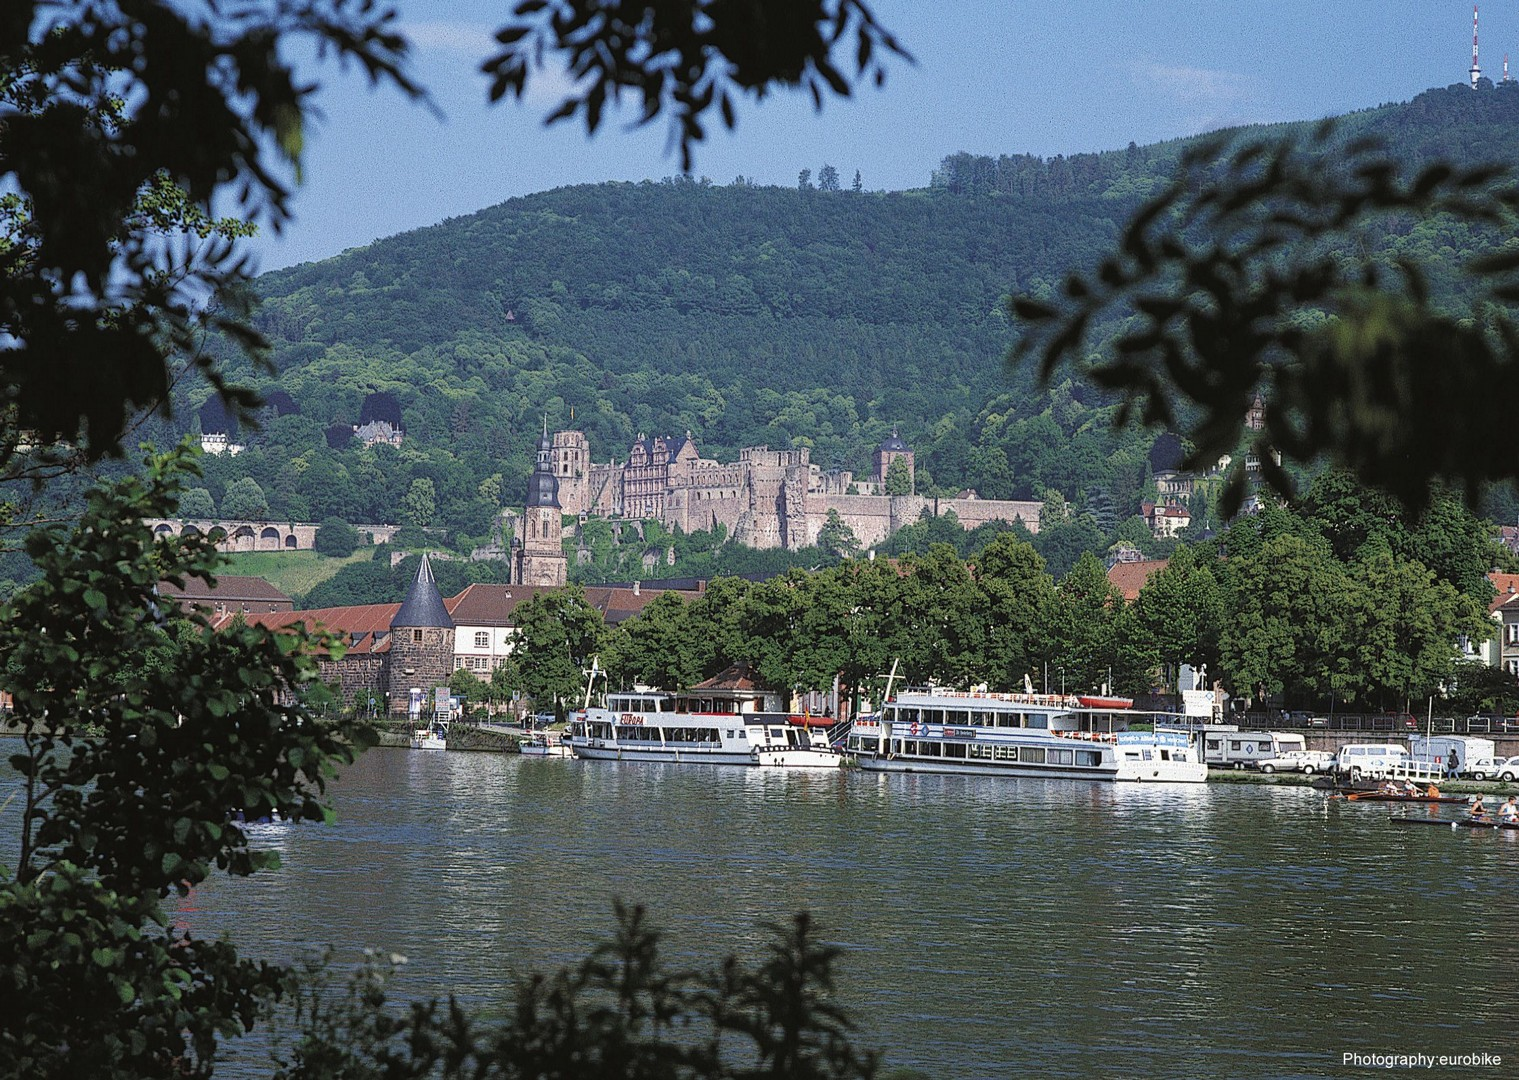 leisure-cycling-holiday-rhine-radweg-strassburg-mainz-heidelberg.jpg - Germany and France - The Rhine Valley - Self-Guided Leisure Cycling Holiday - Leisure Cycling